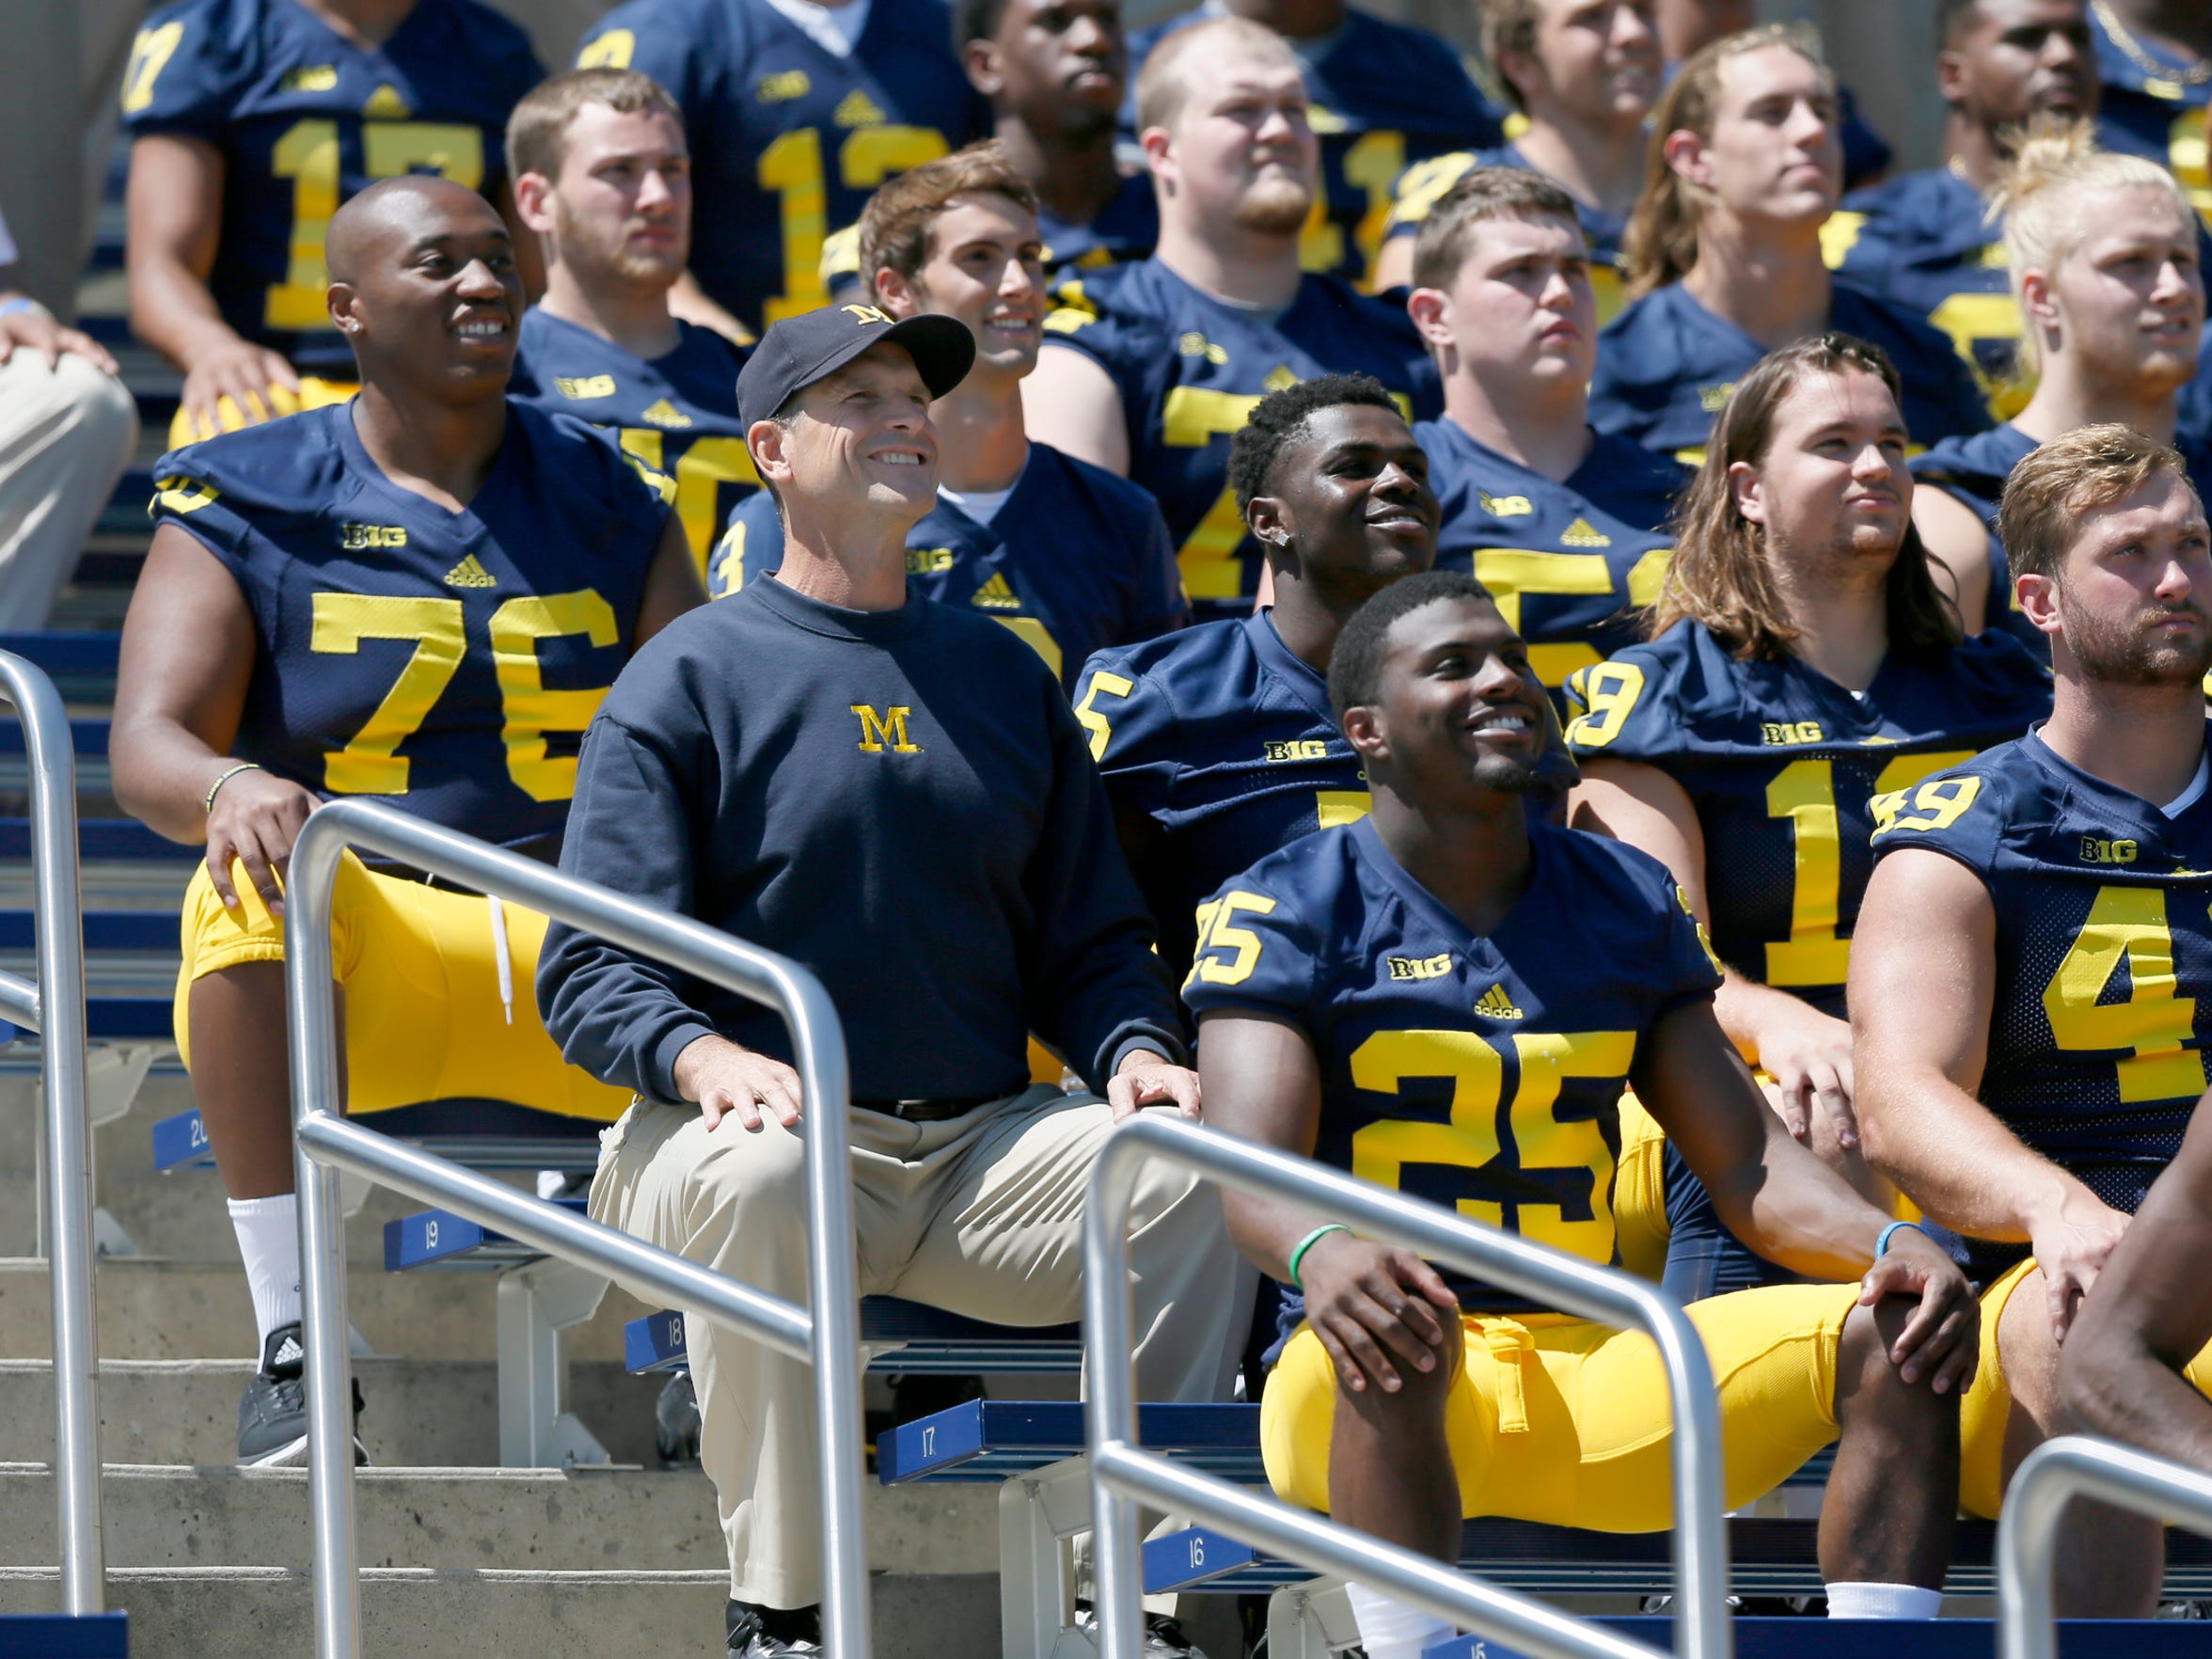 Michigan head coach Jim Harbaugh, left center, takes his seat off to the side with his players during the team's official photo at Michigan Stadium during football media day on August 6, 2015, in Ann Arbor.